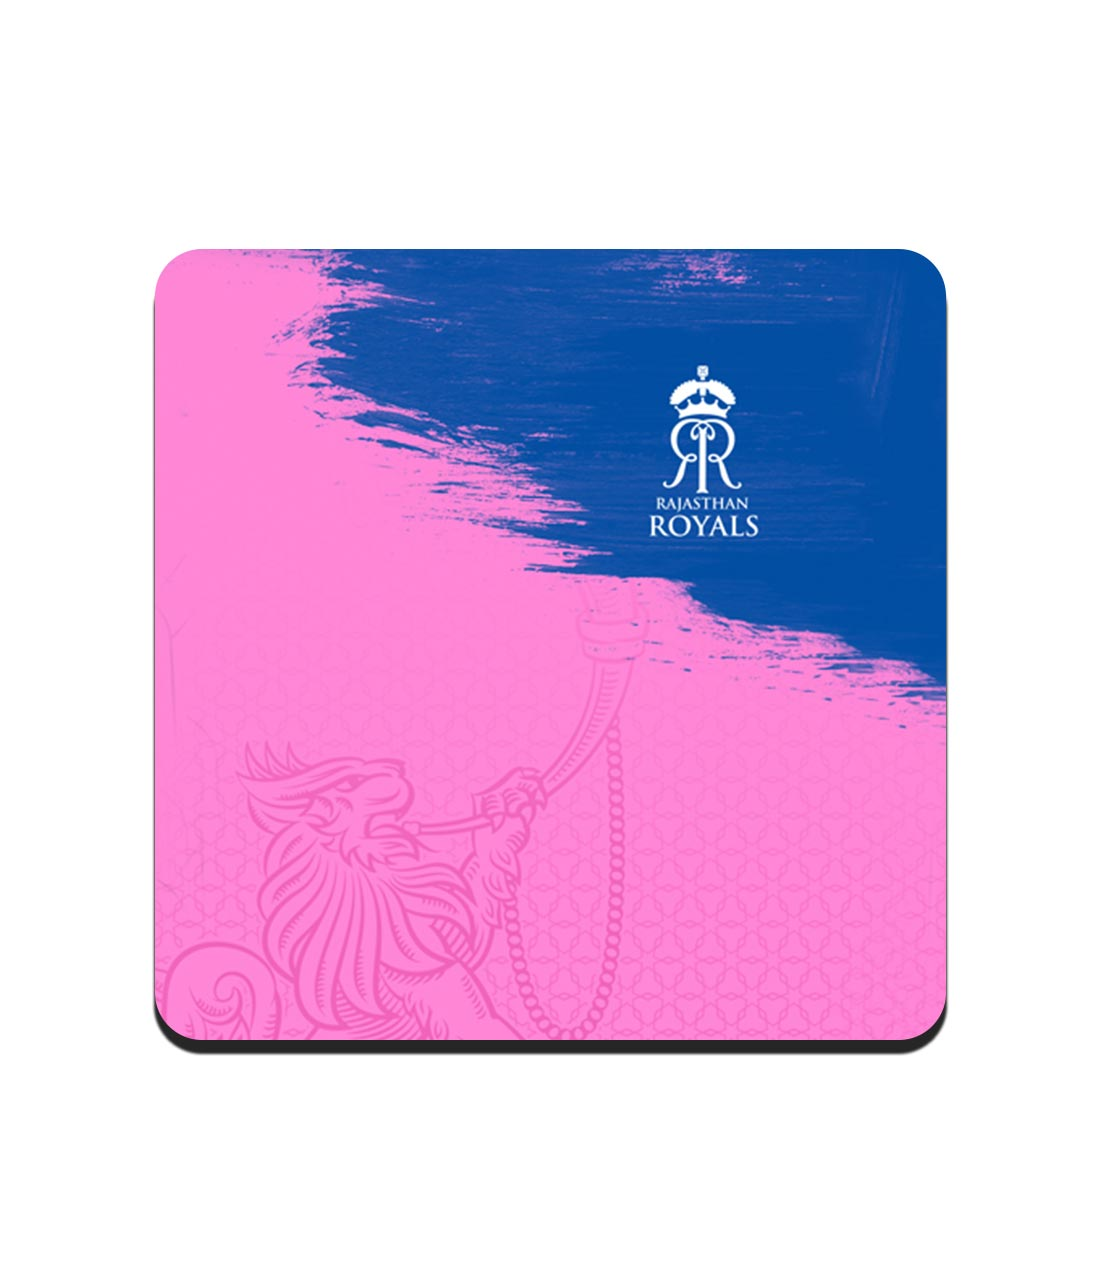 Rajasthan Royals Crest Pink - 10 X 10 (cm) Coasters